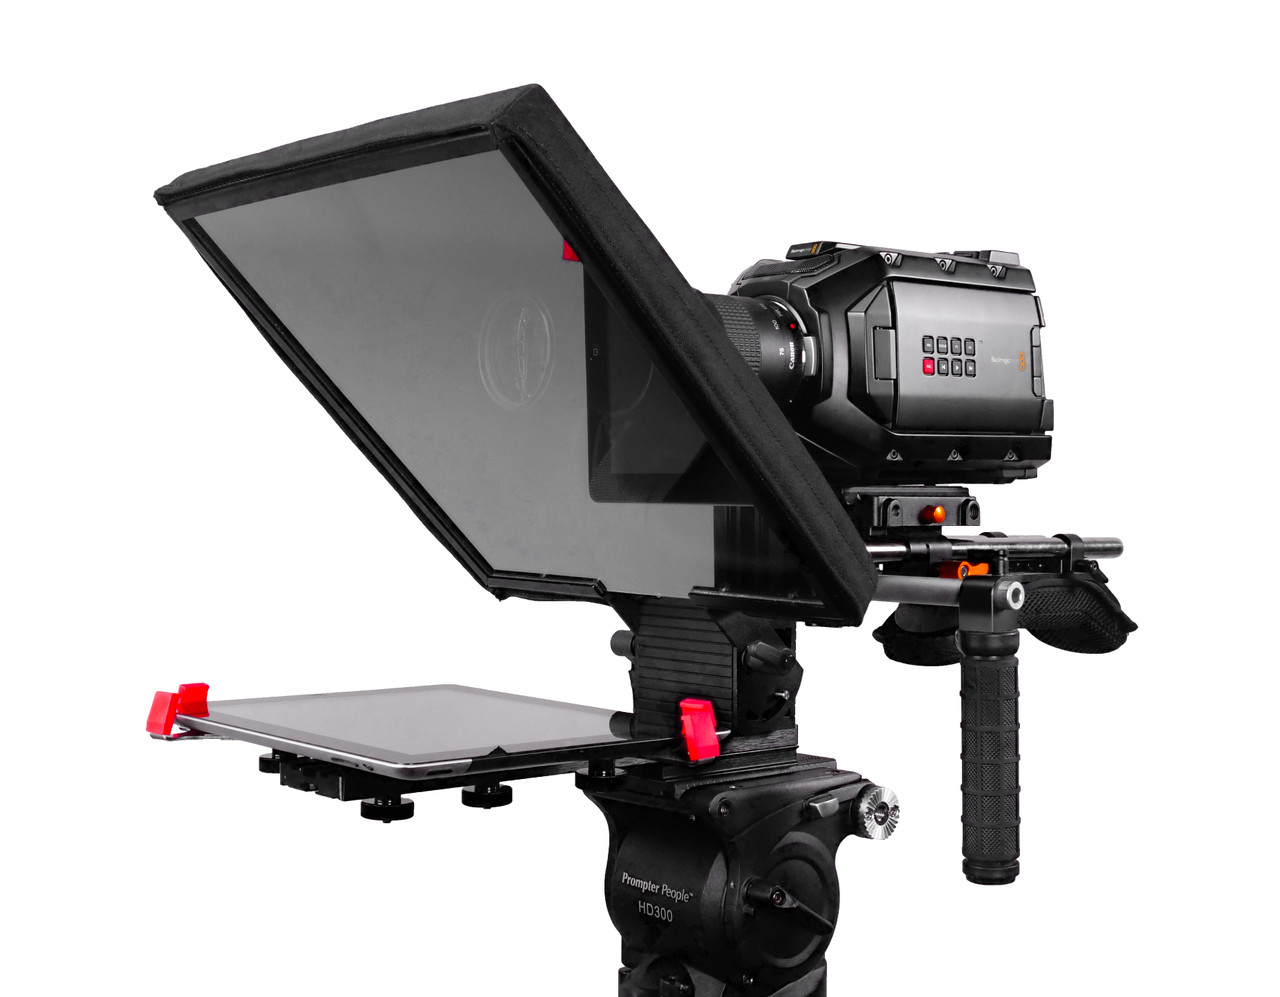 UltraFlex-12 15mm Rail-Mount iPad Teleprompter Model - Angled